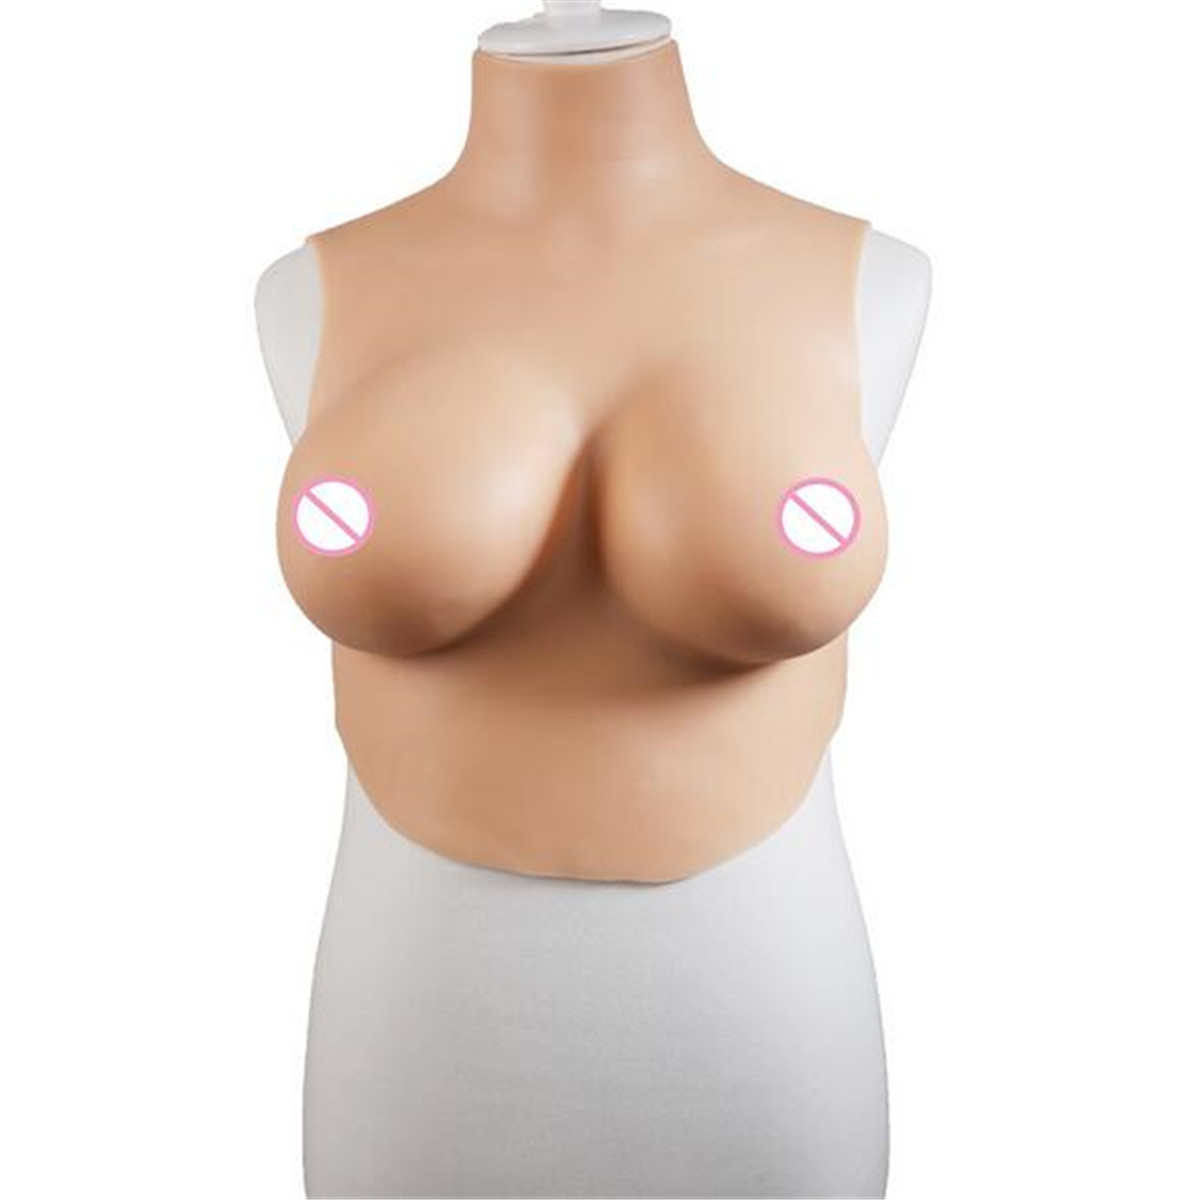 Top quality E Cup Realistic Silicone Breast Forms Artificial Boobs Enhancer Crossdresser vagina for man shemale Trandsgender titTop quality E Cup Realistic Silicone Breast Forms Artificial Boobs Enhancer Crossdresser vagina for man shemale Trandsgender tit